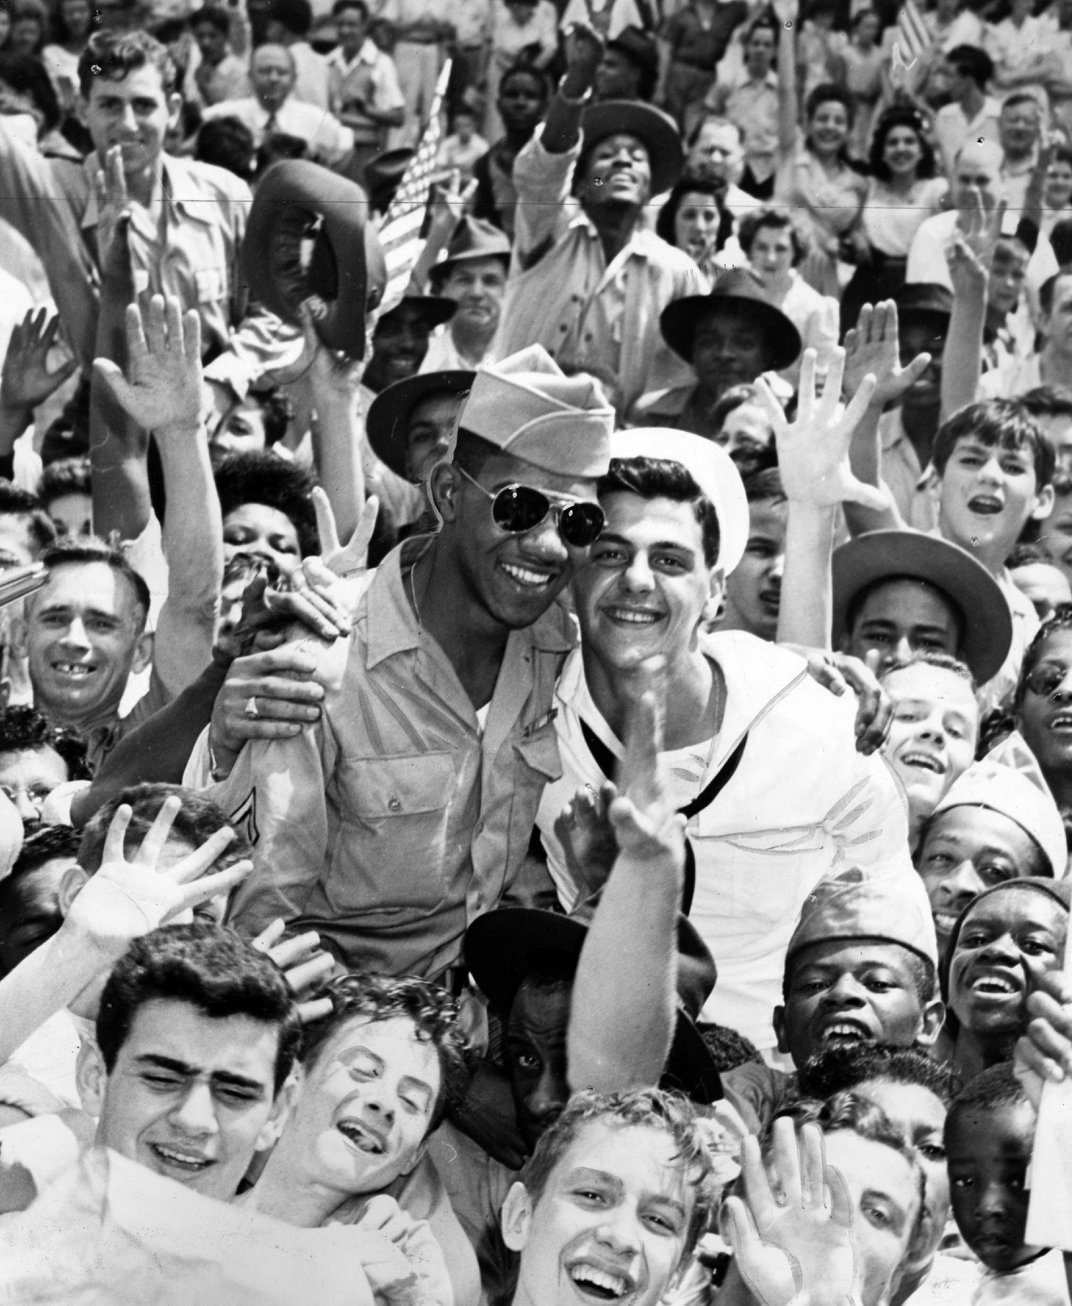 Looking Back on V-J Day 75 Years Later